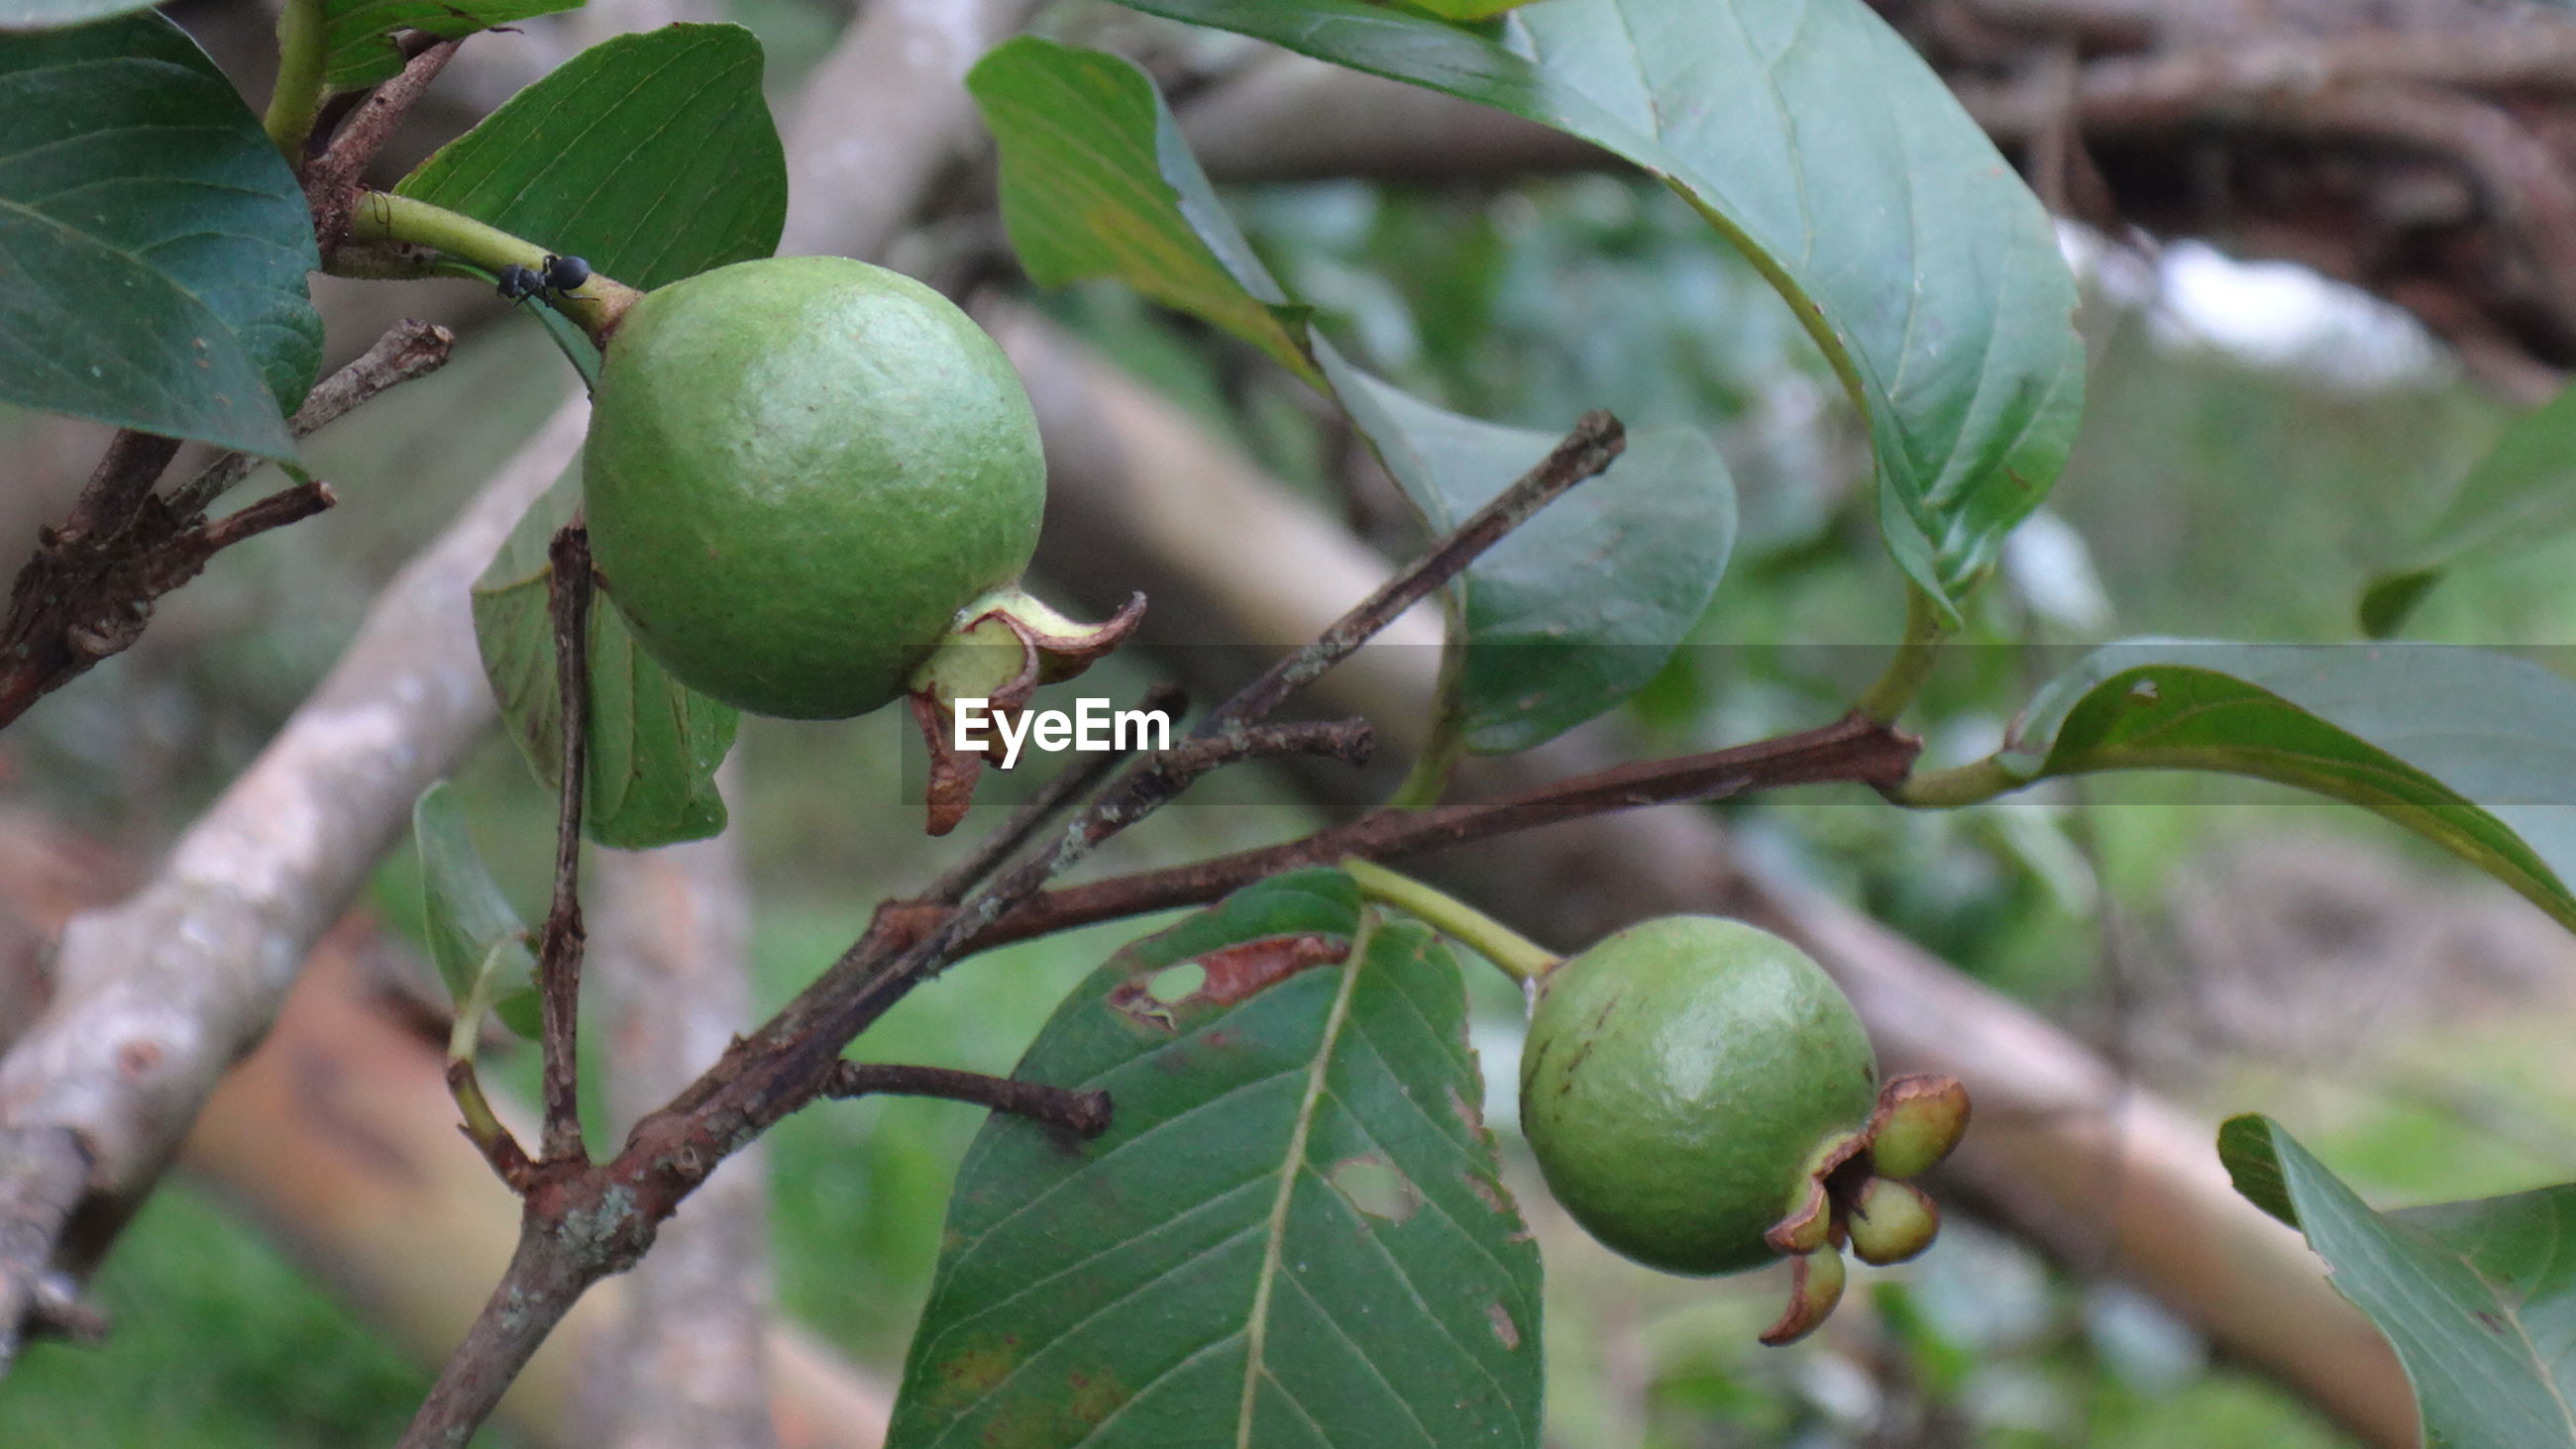 Close-up of fruits growing outdoors